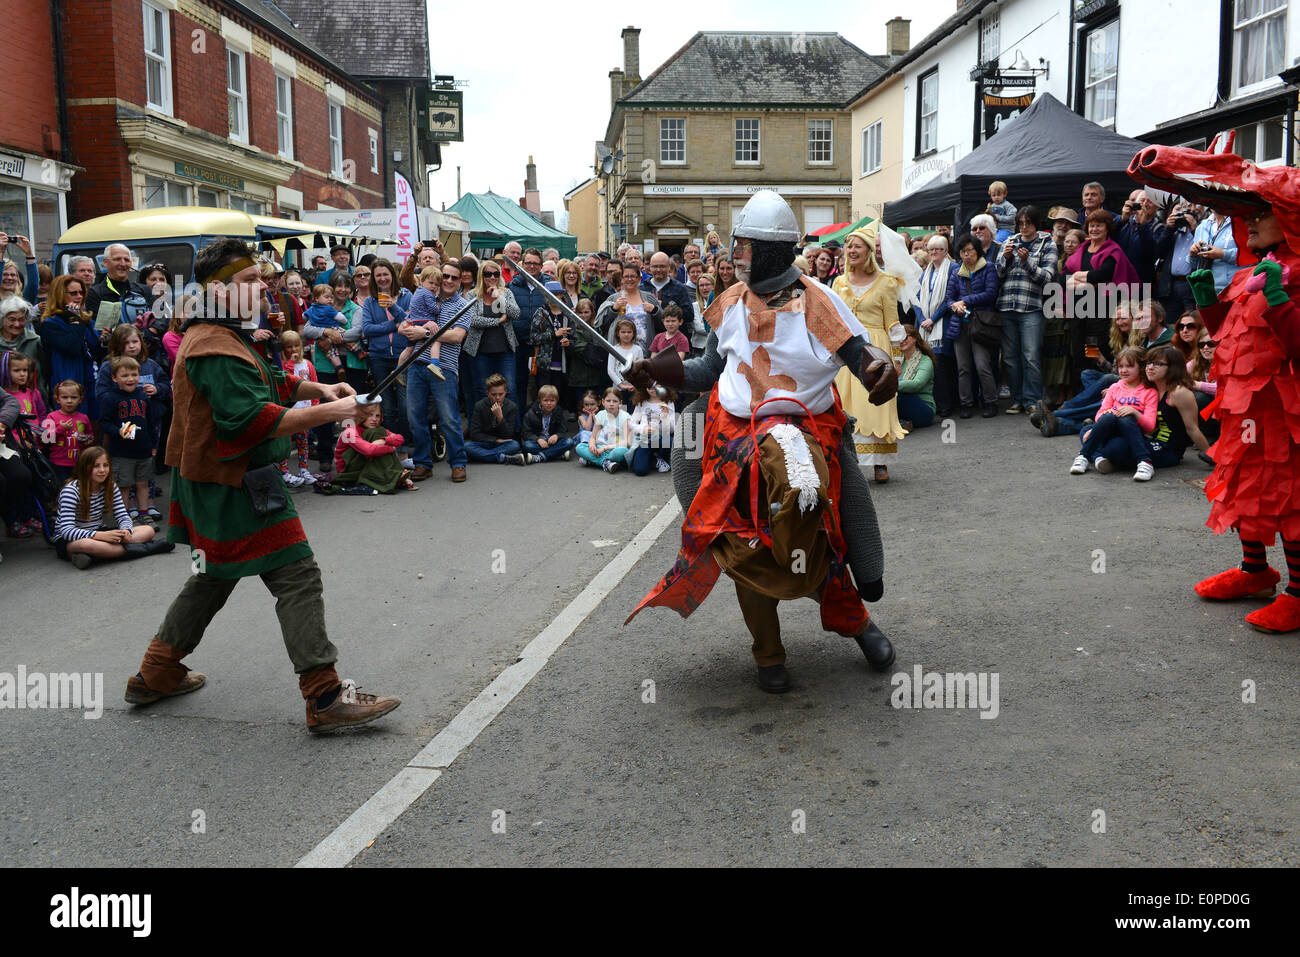 Mummers Play performing The Green Man Festival at Clun in Shropshire - Stock Image